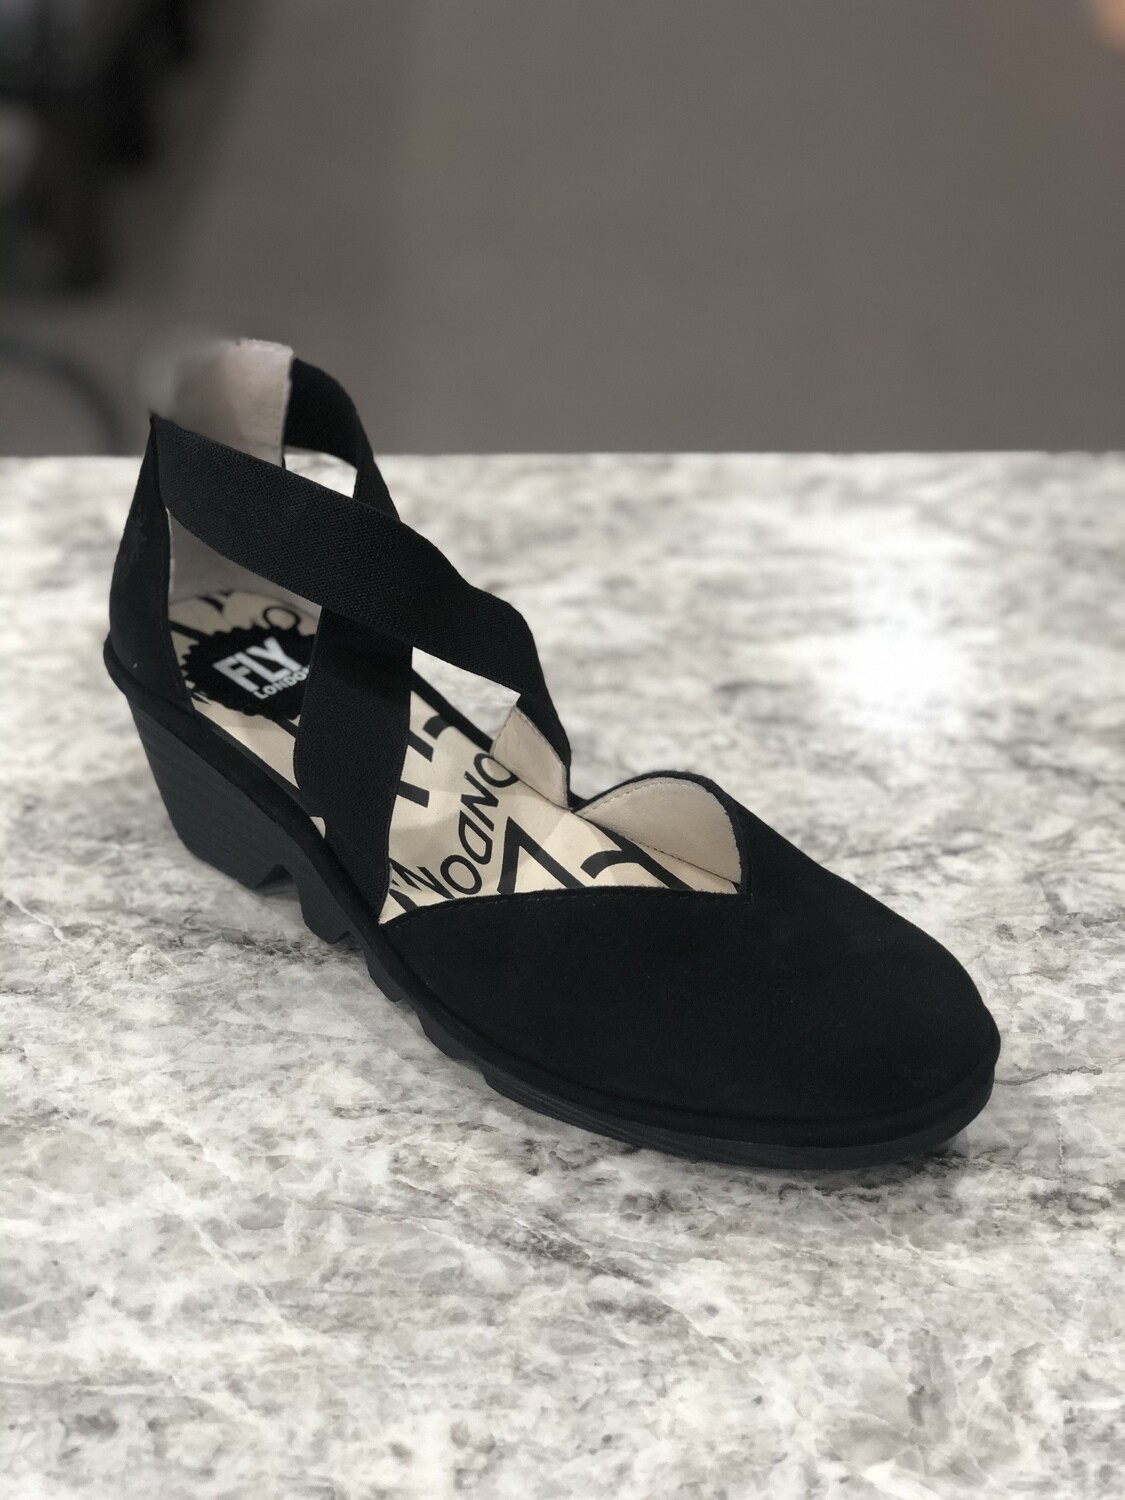 PACO147 Black Wedge Sandal